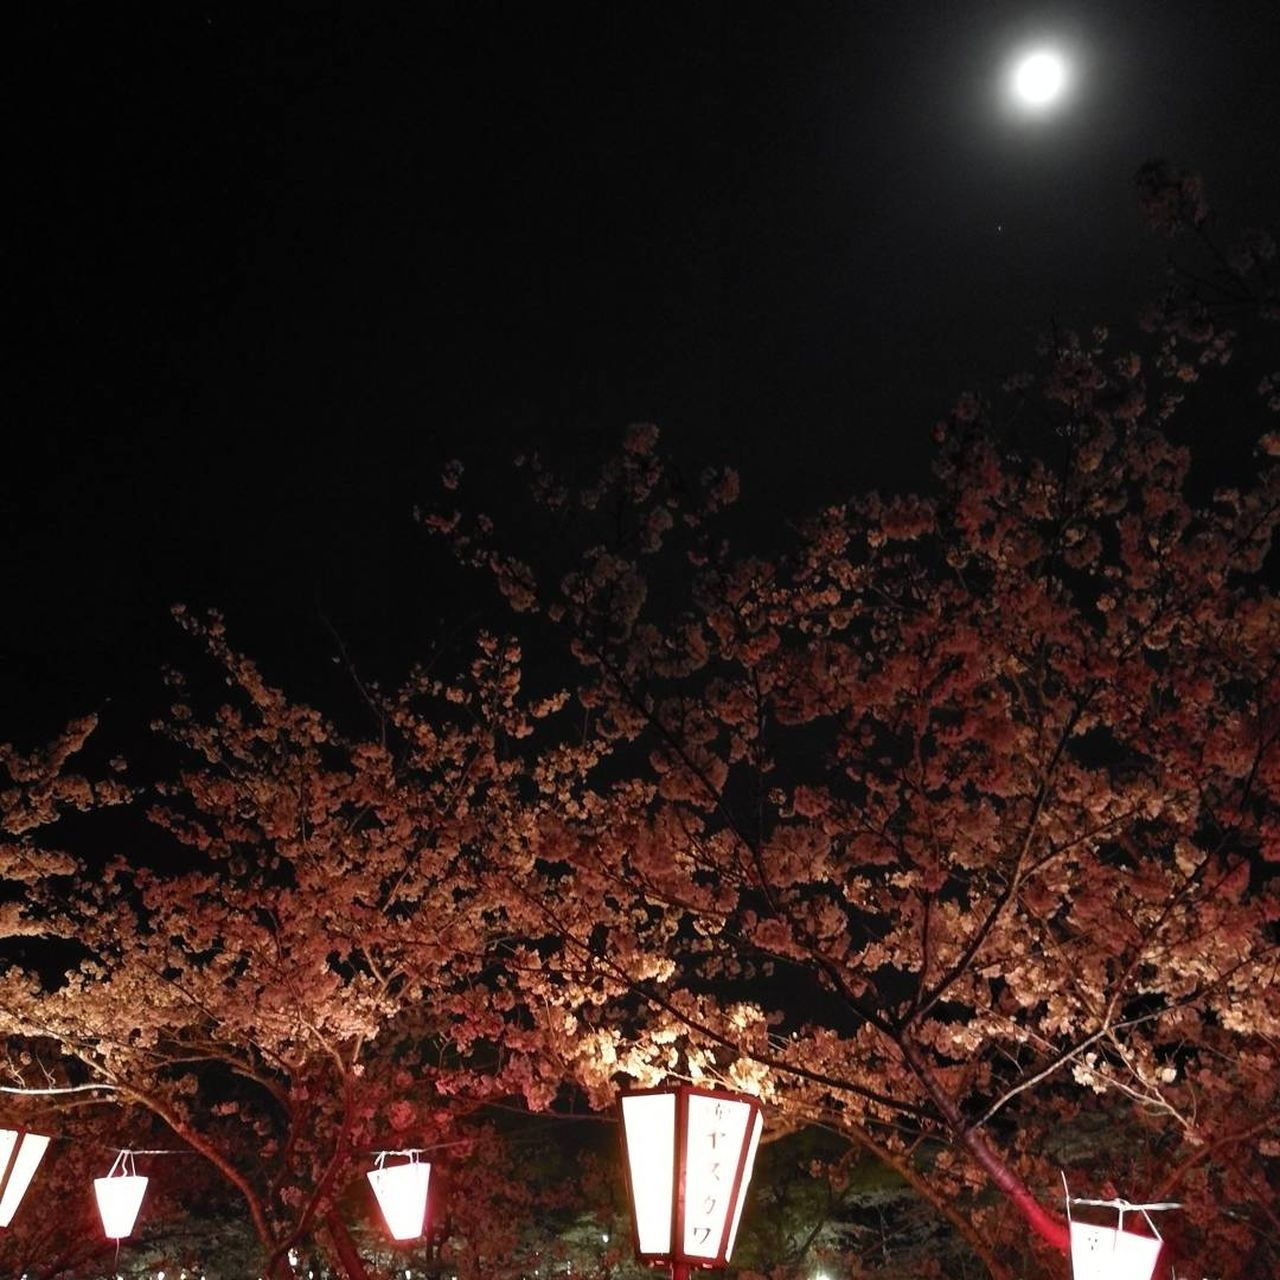 night, illuminated, tree, flower, low angle view, lighting equipment, growth, no people, nature, branch, beauty in nature, moon, outdoors, fragility, freshness, close-up, sky